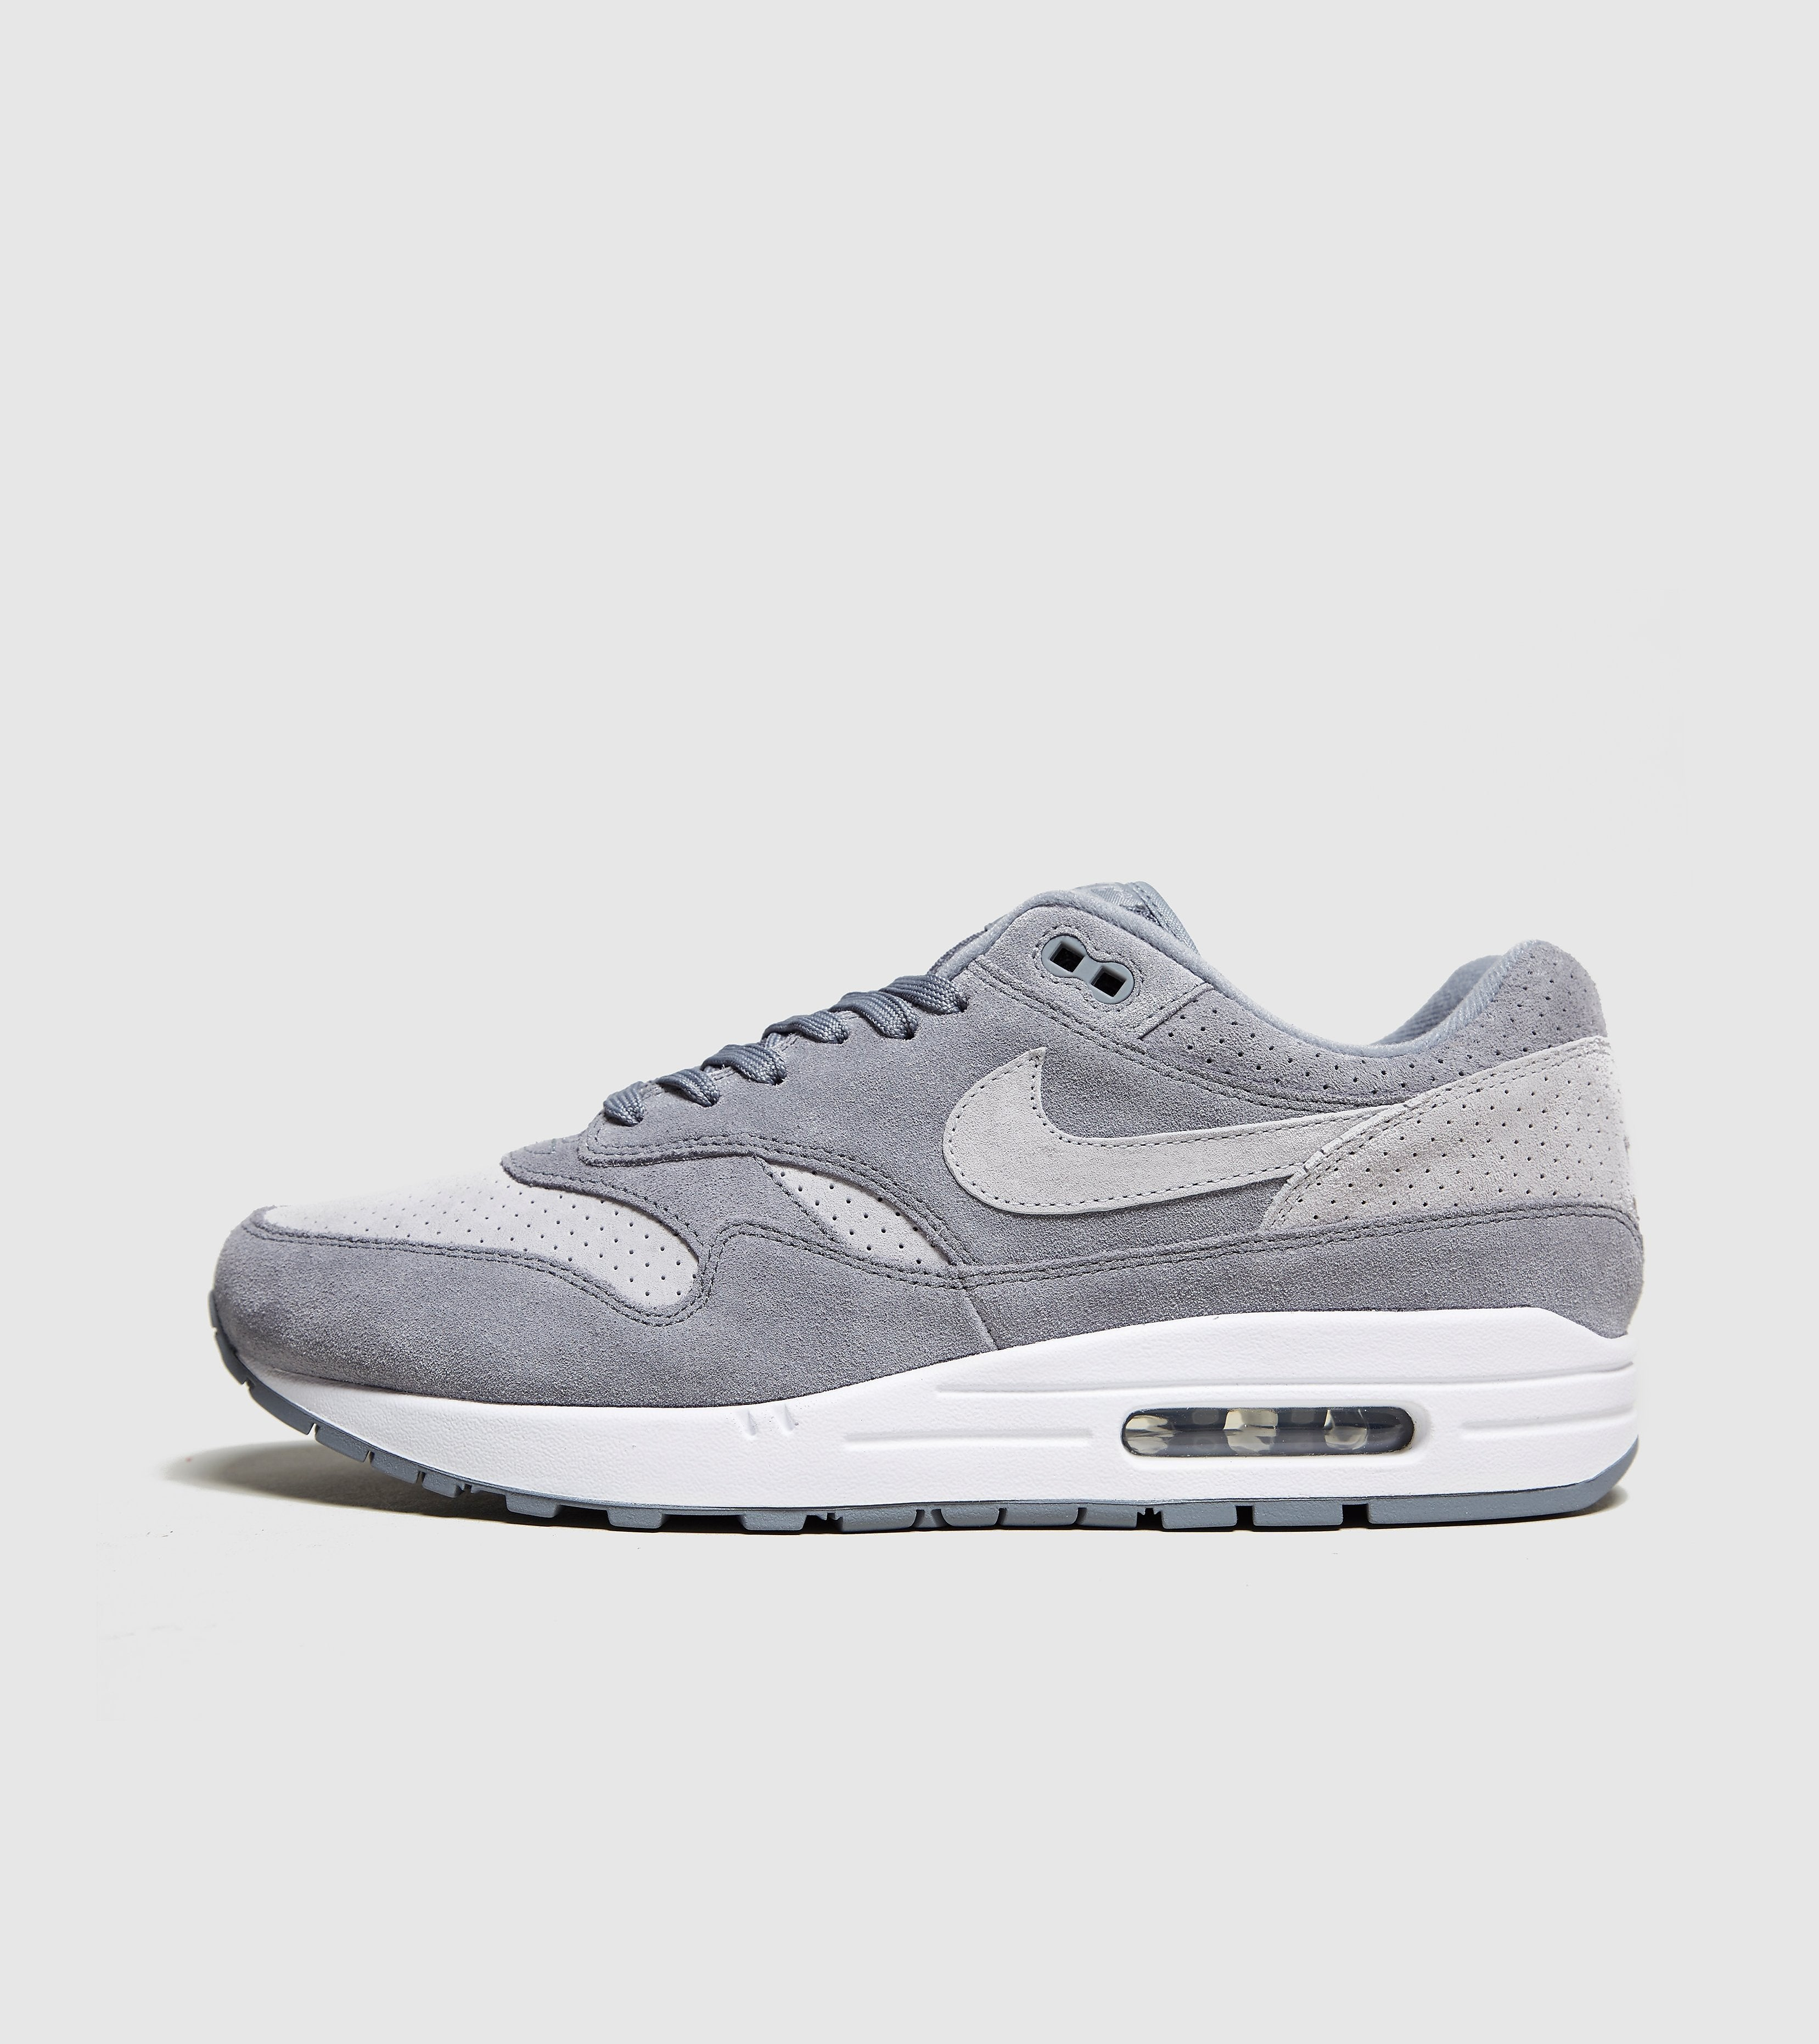 7f4bd20ac9bfb Nike Nike Air Max 1 Premium, Grey/White at Soleheaven Curated Collections